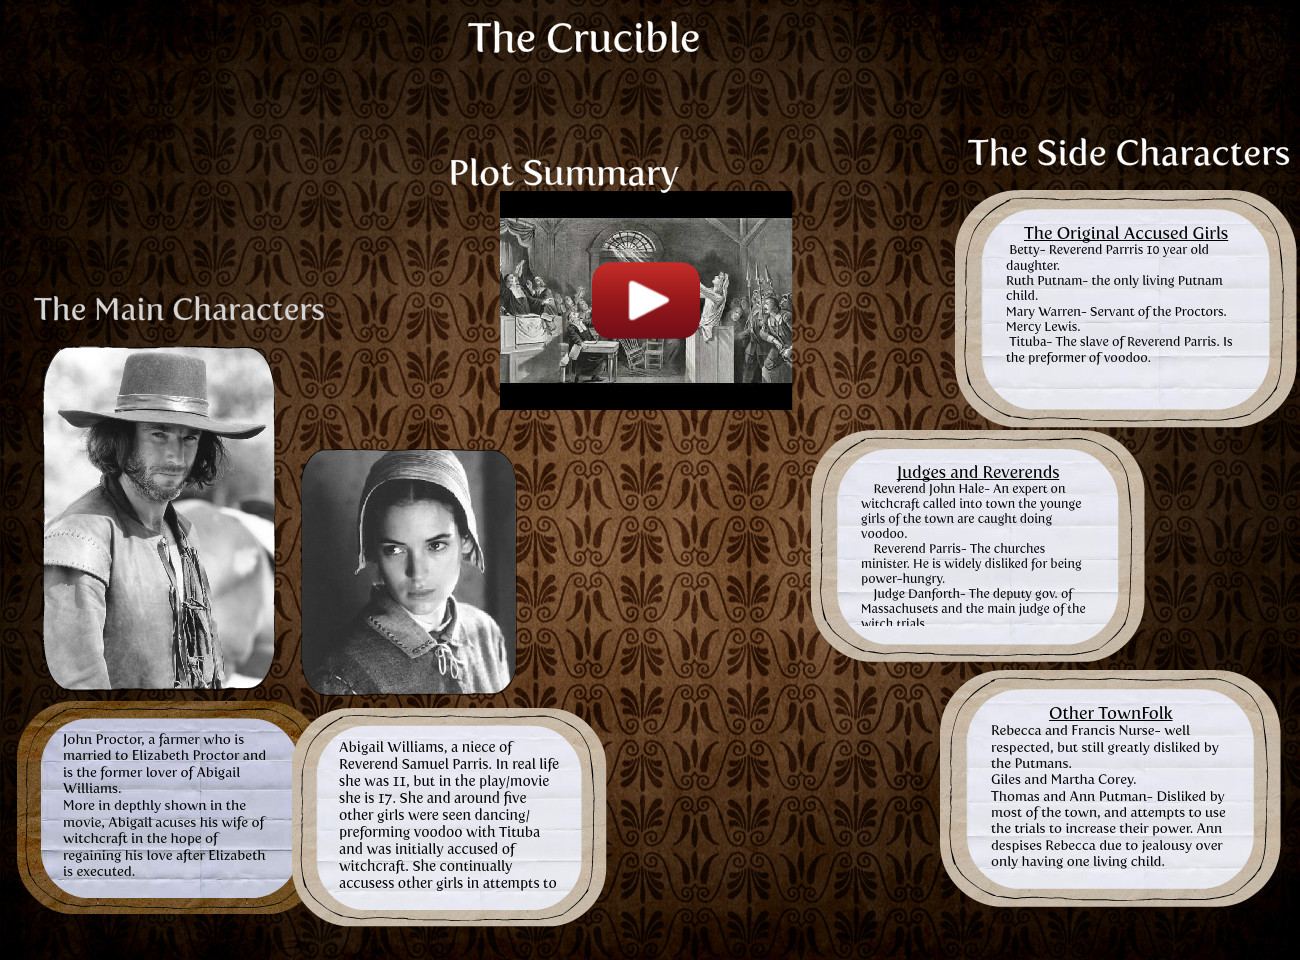 The Crucible Movie (English Project)